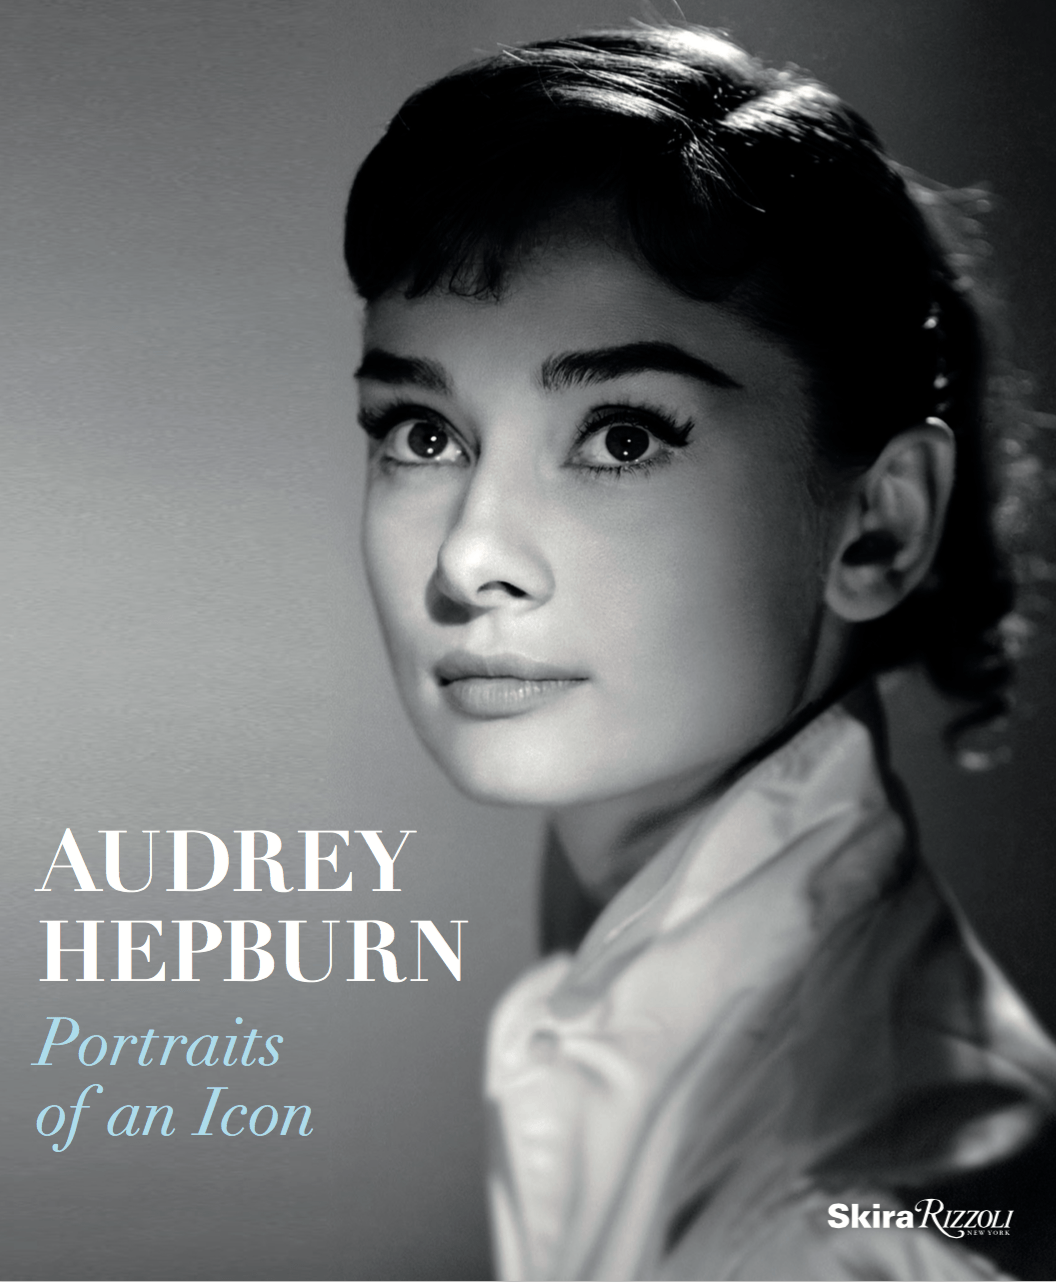 Audrey Hepburn Books - portrait of an icon